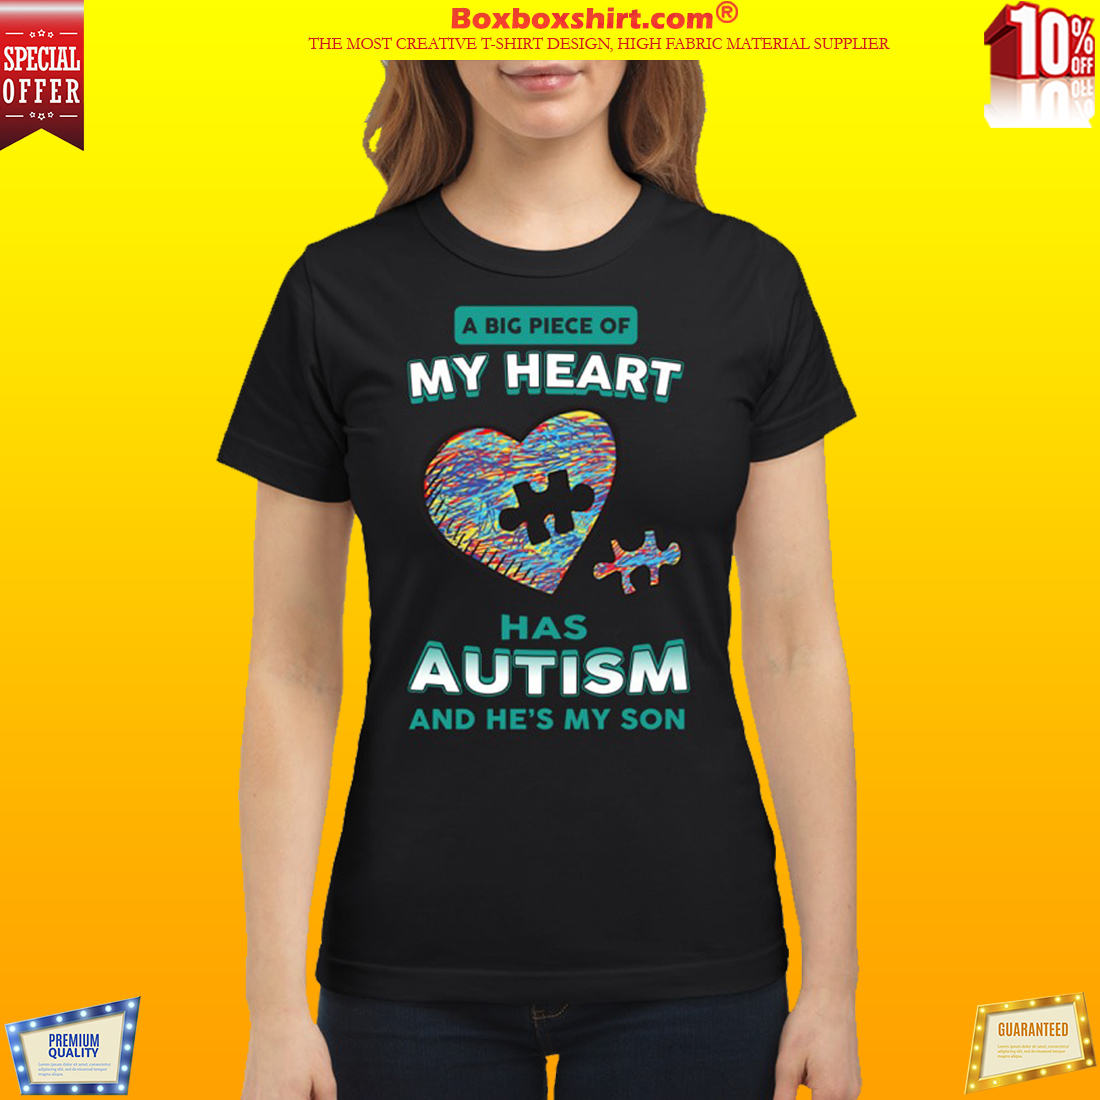 A big piece of my heart has autism he's my son shirt